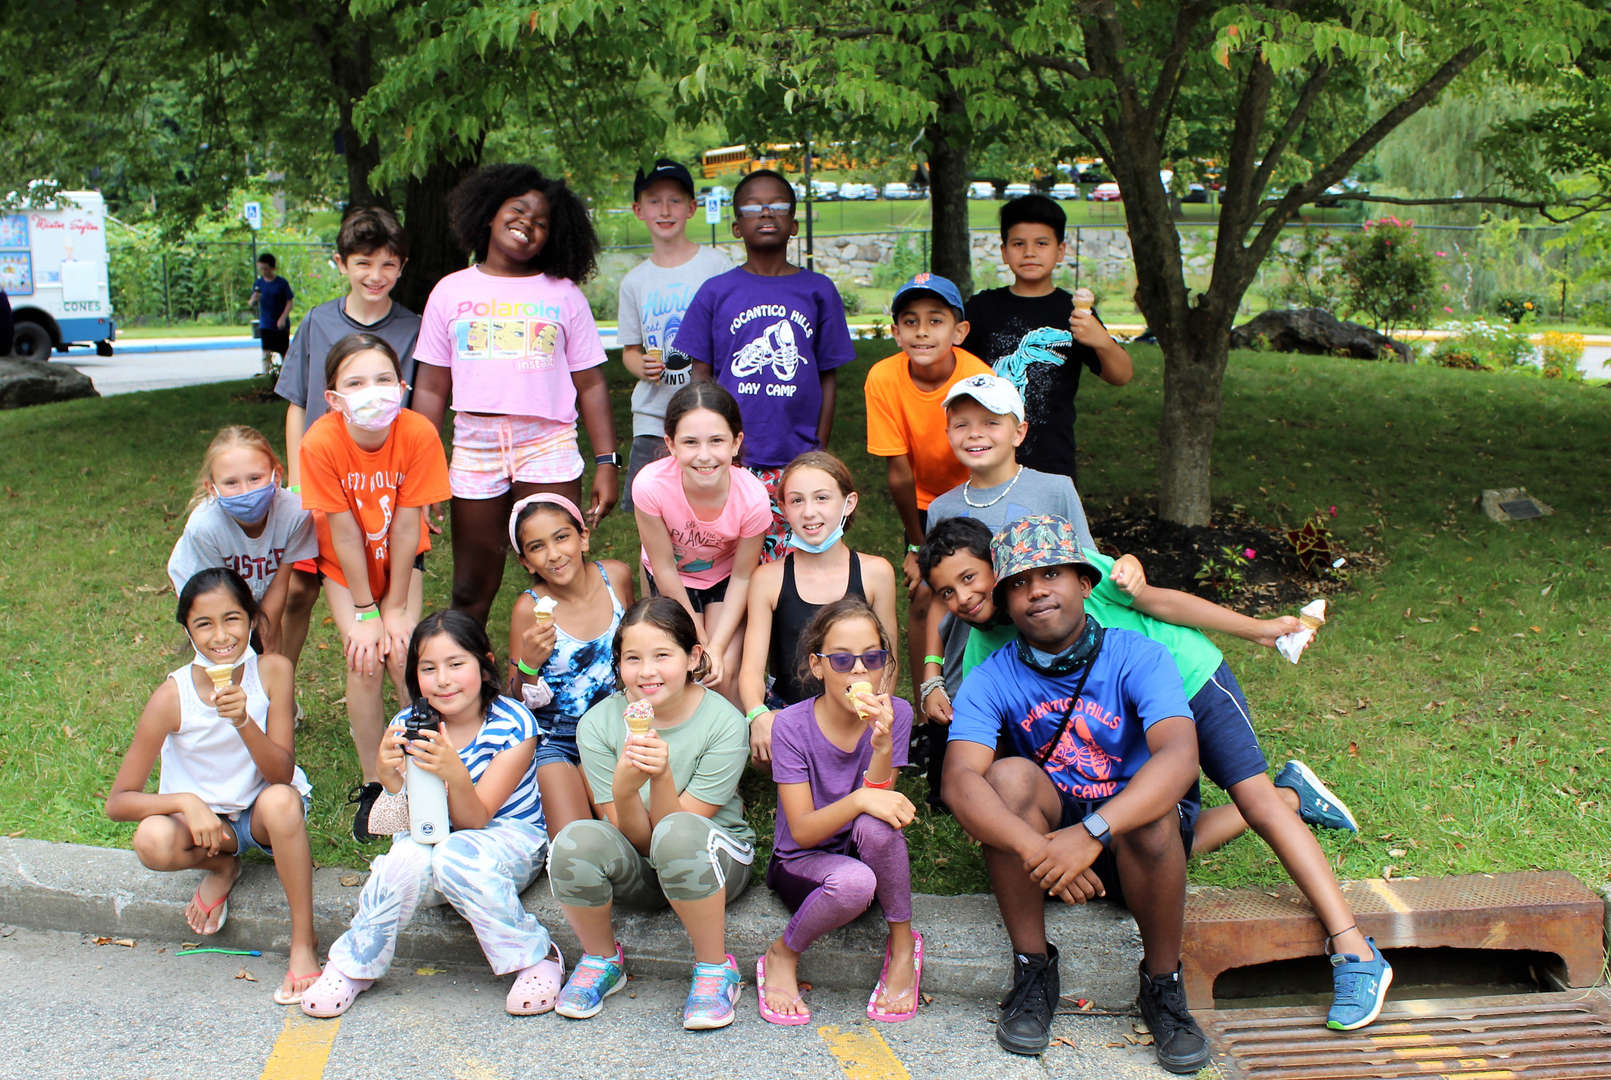 Campers and a camp counselor pose for group photo.